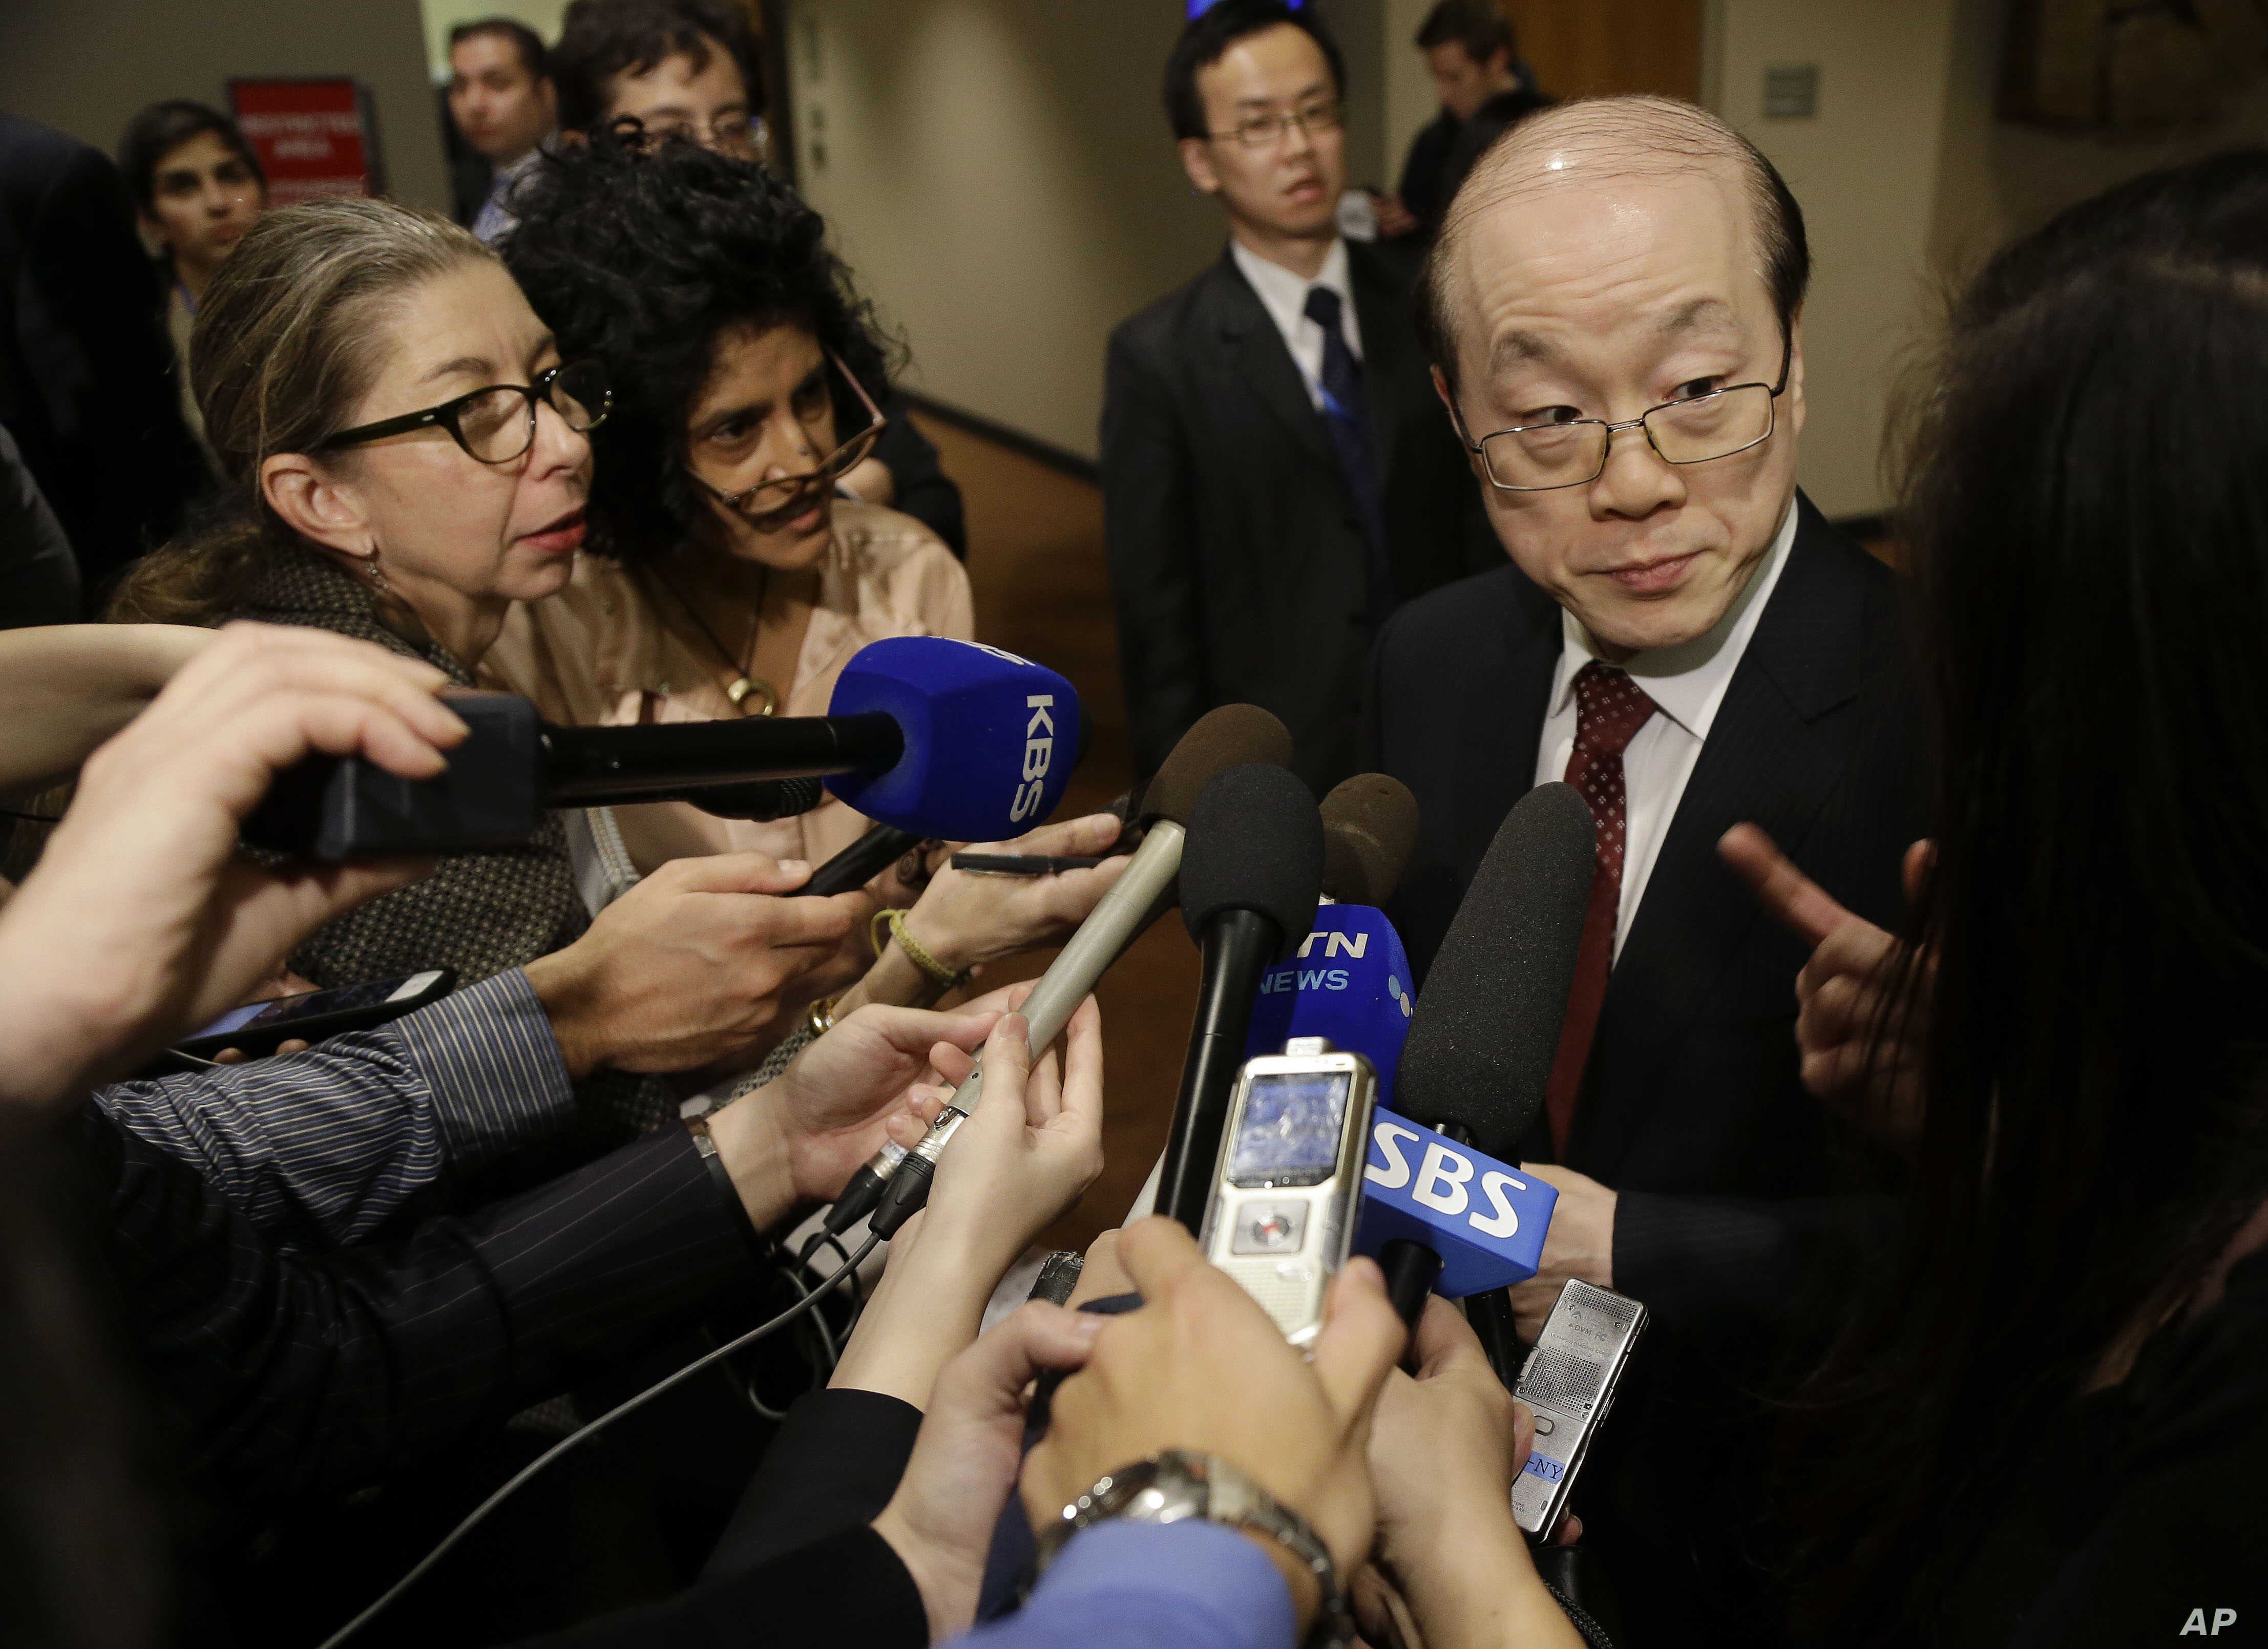 FILE - China's Ambassador to the U.N. Liu Jieyi, right, takes questions from the media during a break in United Nations Security Council consultations.